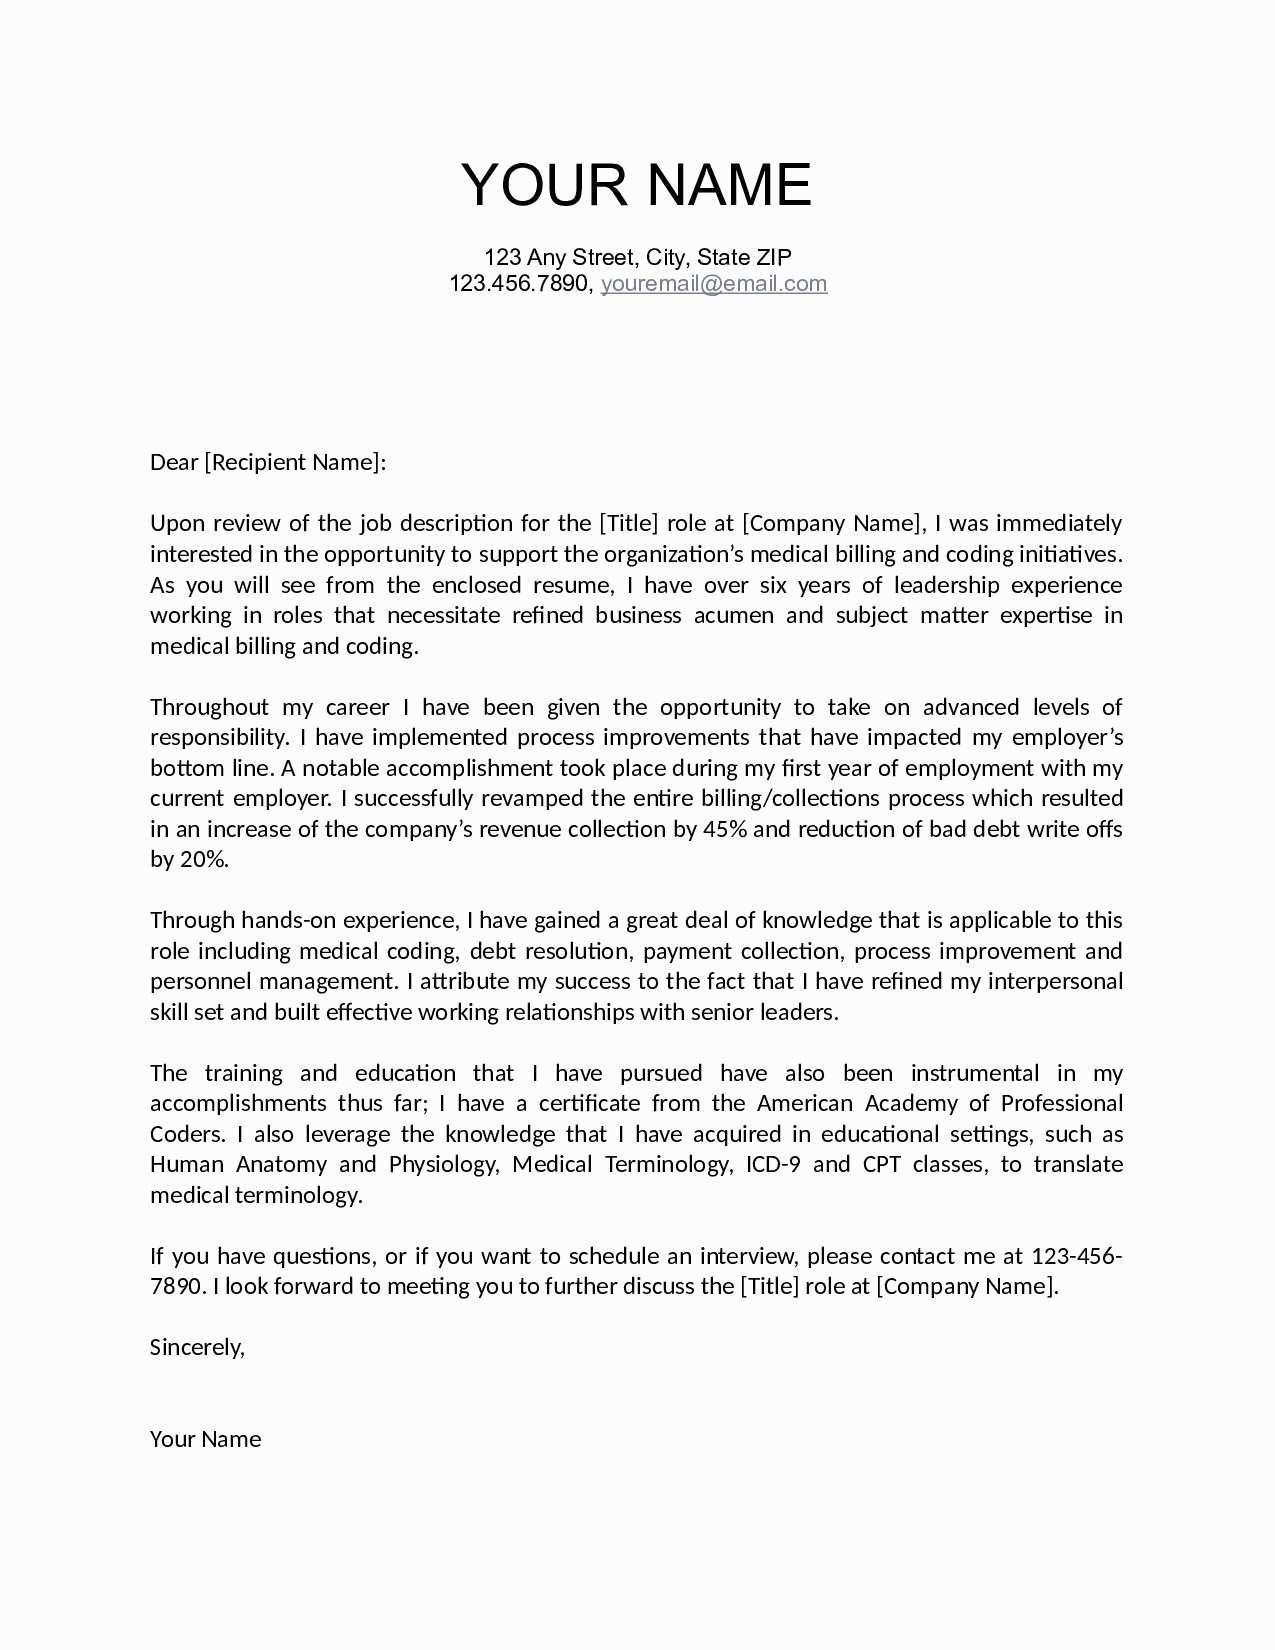 charge off letter template example-Cover Letter for Oil and Gas Job Save Lovely Job Fer Letter Template Us Copy Od 16-h